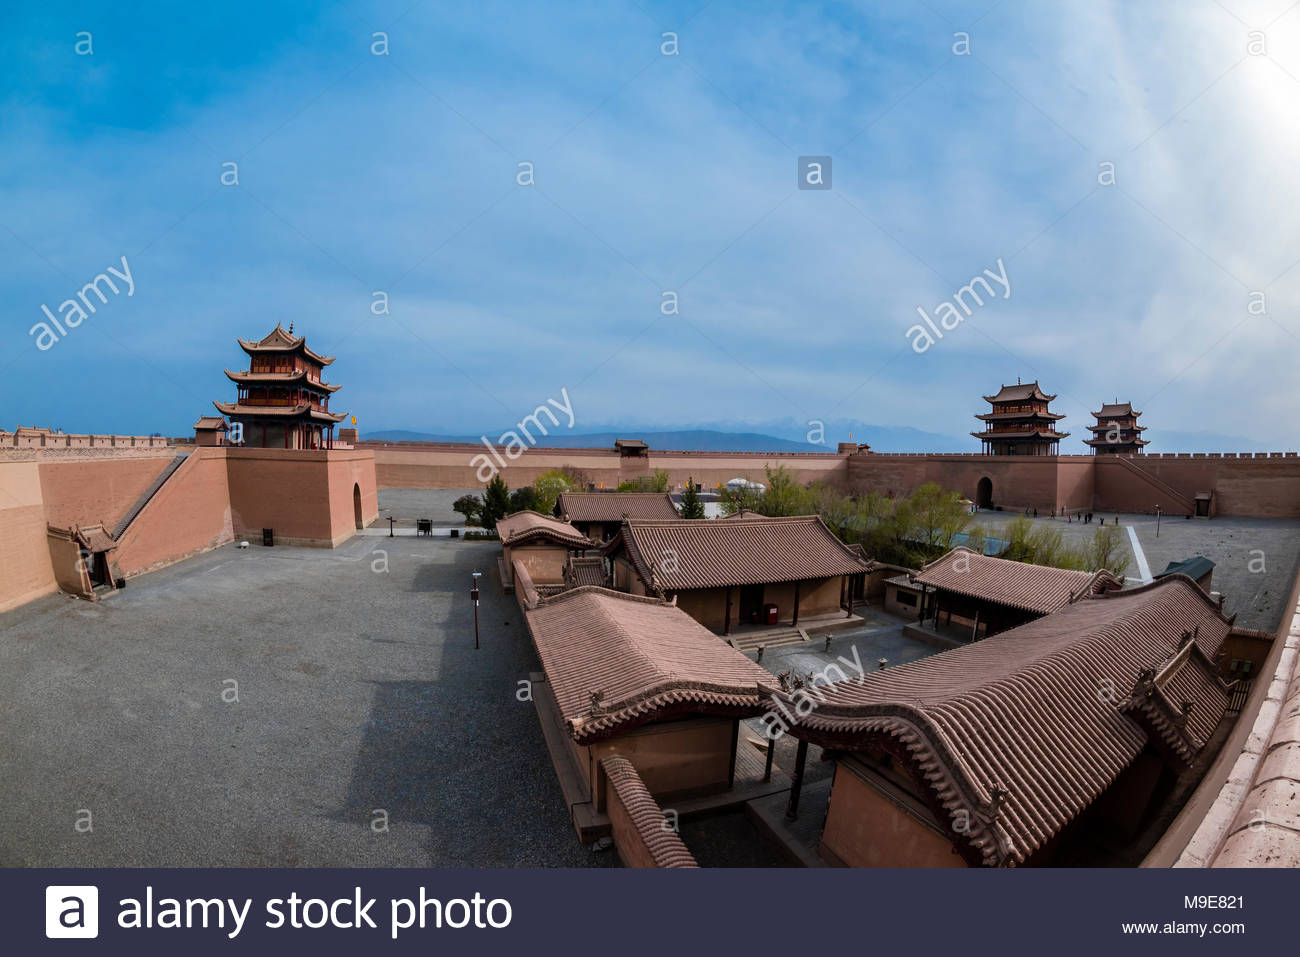 Jiayuguan Fort is the western end of the Great Wall built in the Ming Dynasty (1368 – 1644). It was an important military fortress and  key waypoint o - Stock Image